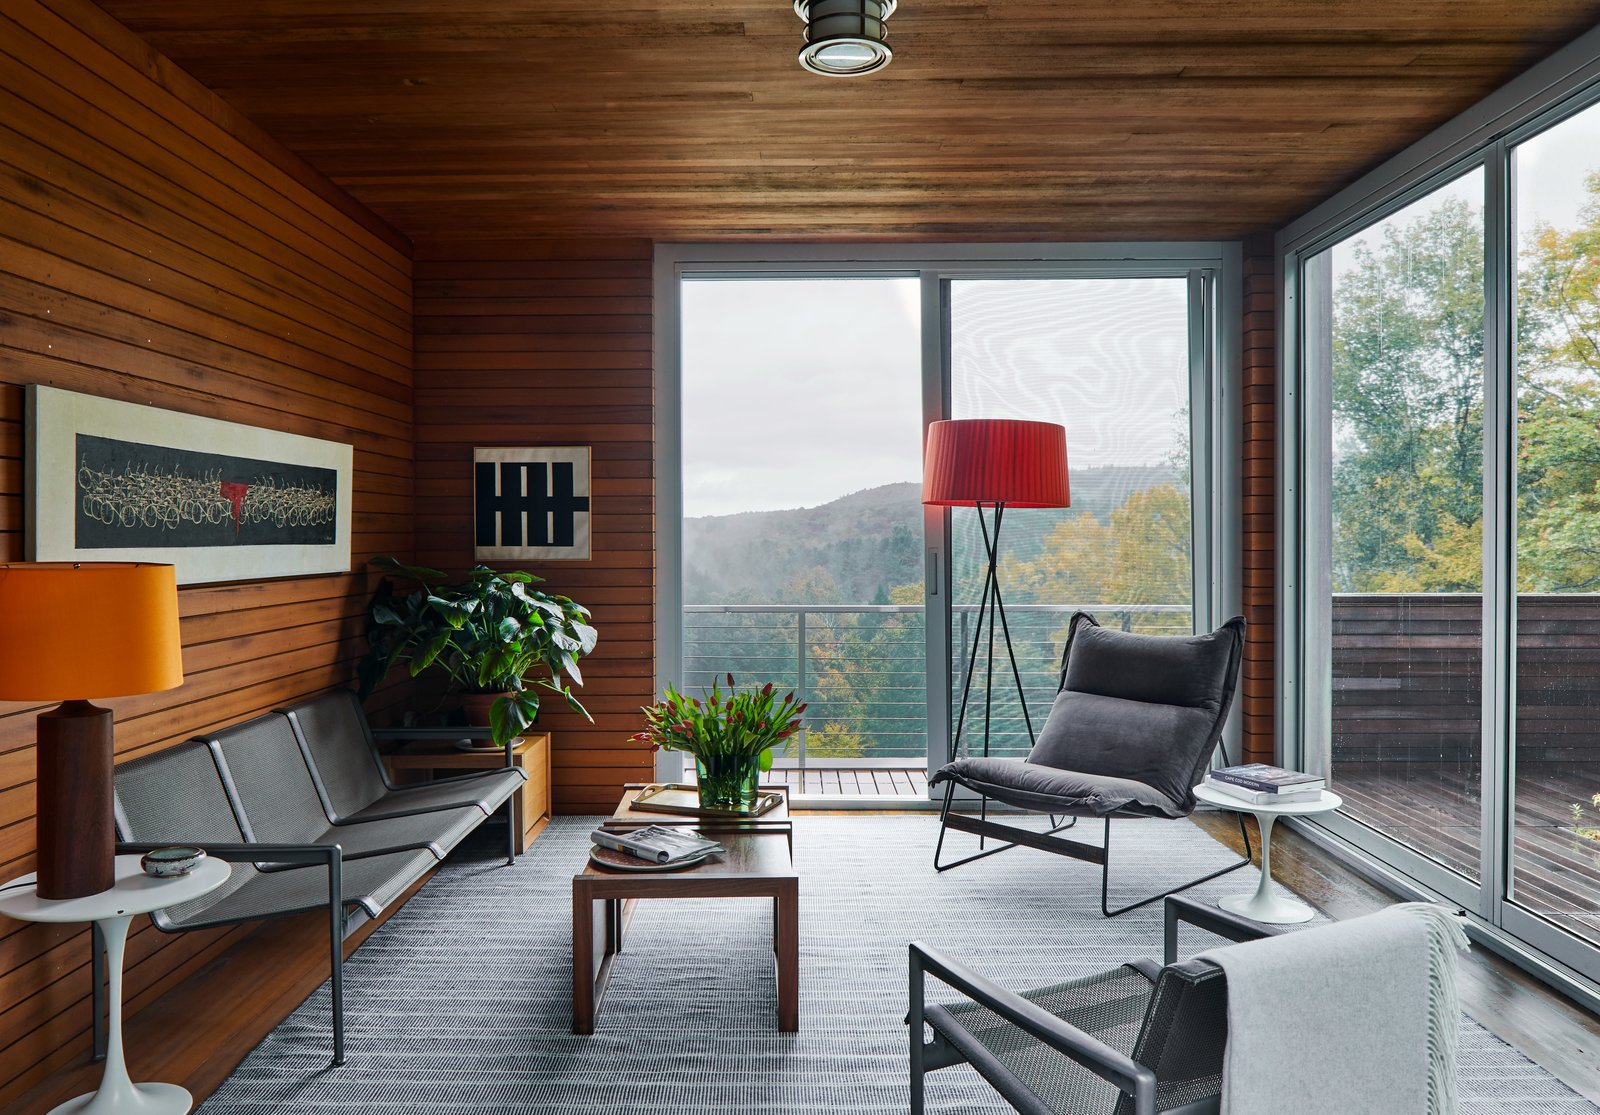 This Exquisite Berkshires Prefab Was Assembled in Just 24 Hours